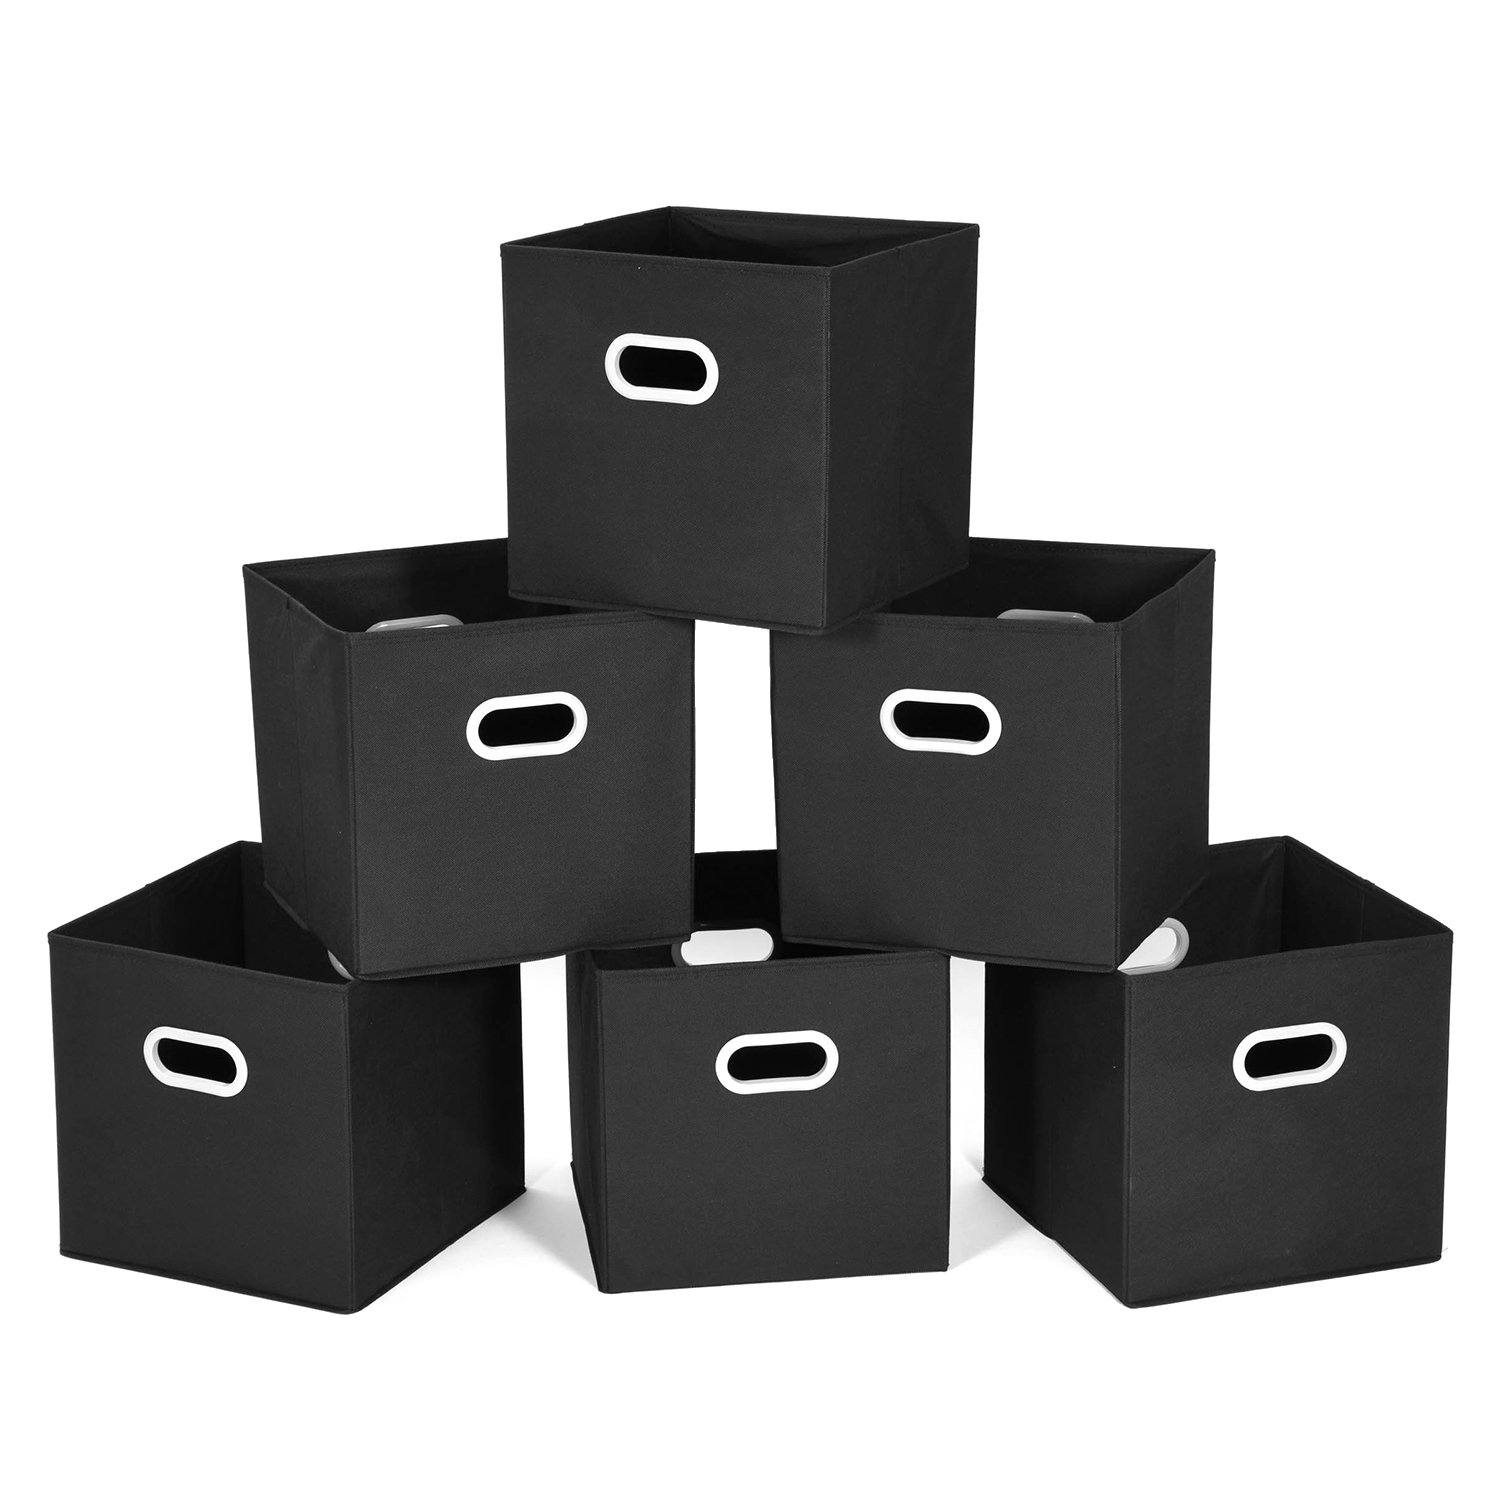 MaidMAX Cloth Storage Bins Cubes Baskets Containers with Dual Plastic Handles for Home Closet Bedroom Drawers Organizers, Foldable, Black, 12×12×12″, Set of 6 by MaidMAX